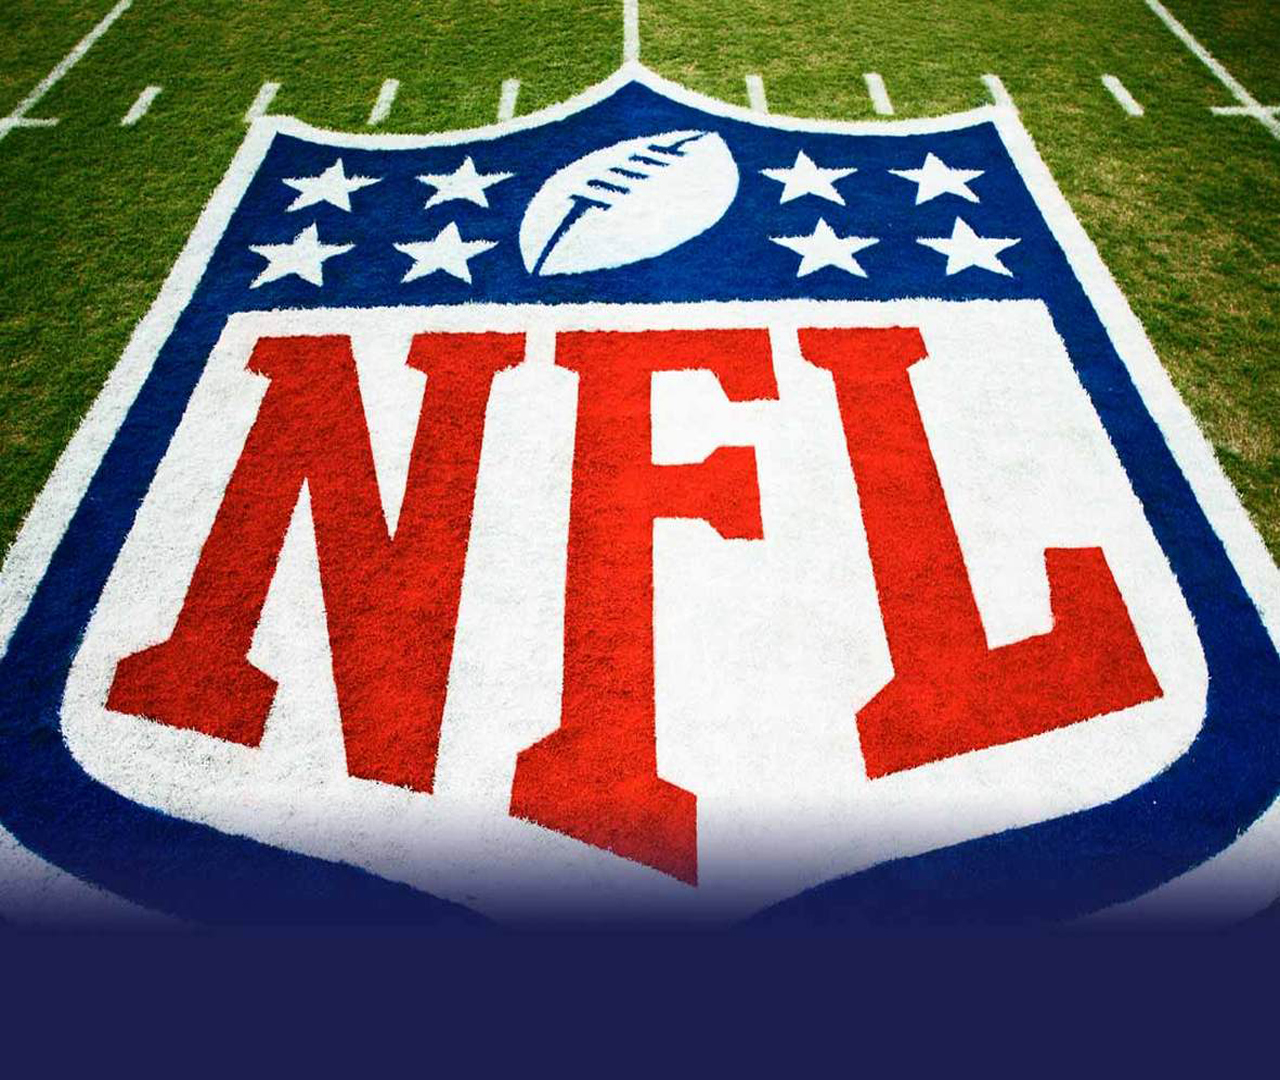 NFL 2012 - Free Download NFL Football HD Wallpapers for iPad and Nexus ...